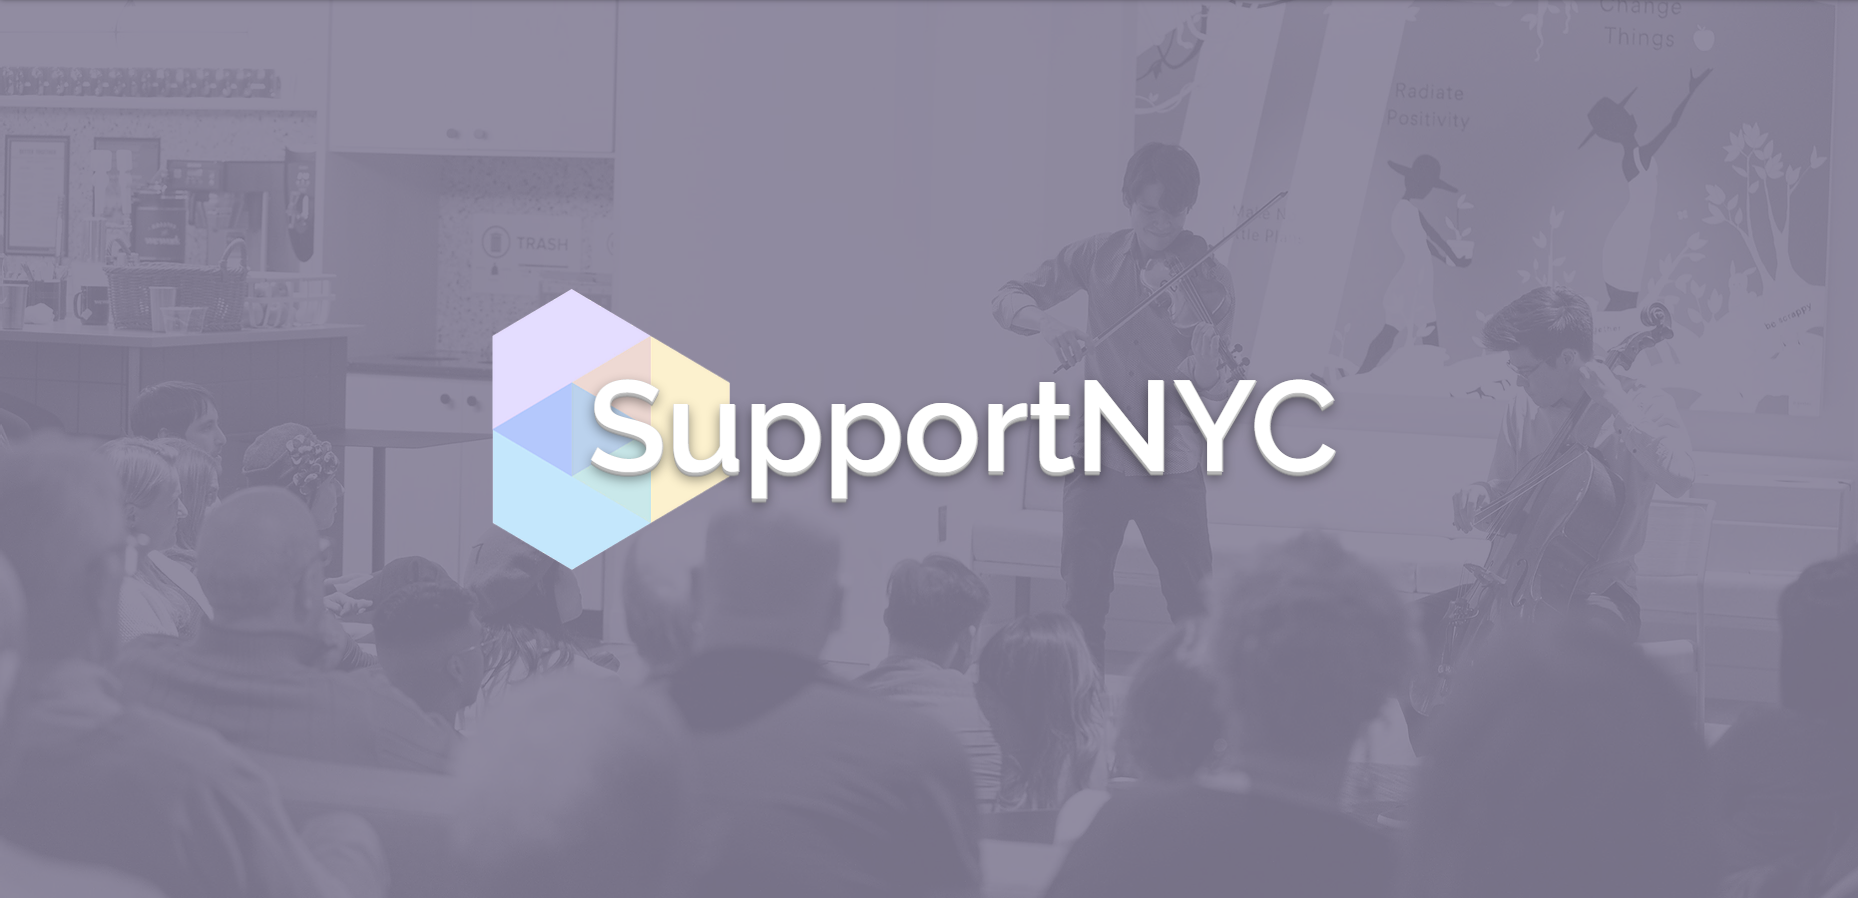 SupportNYC